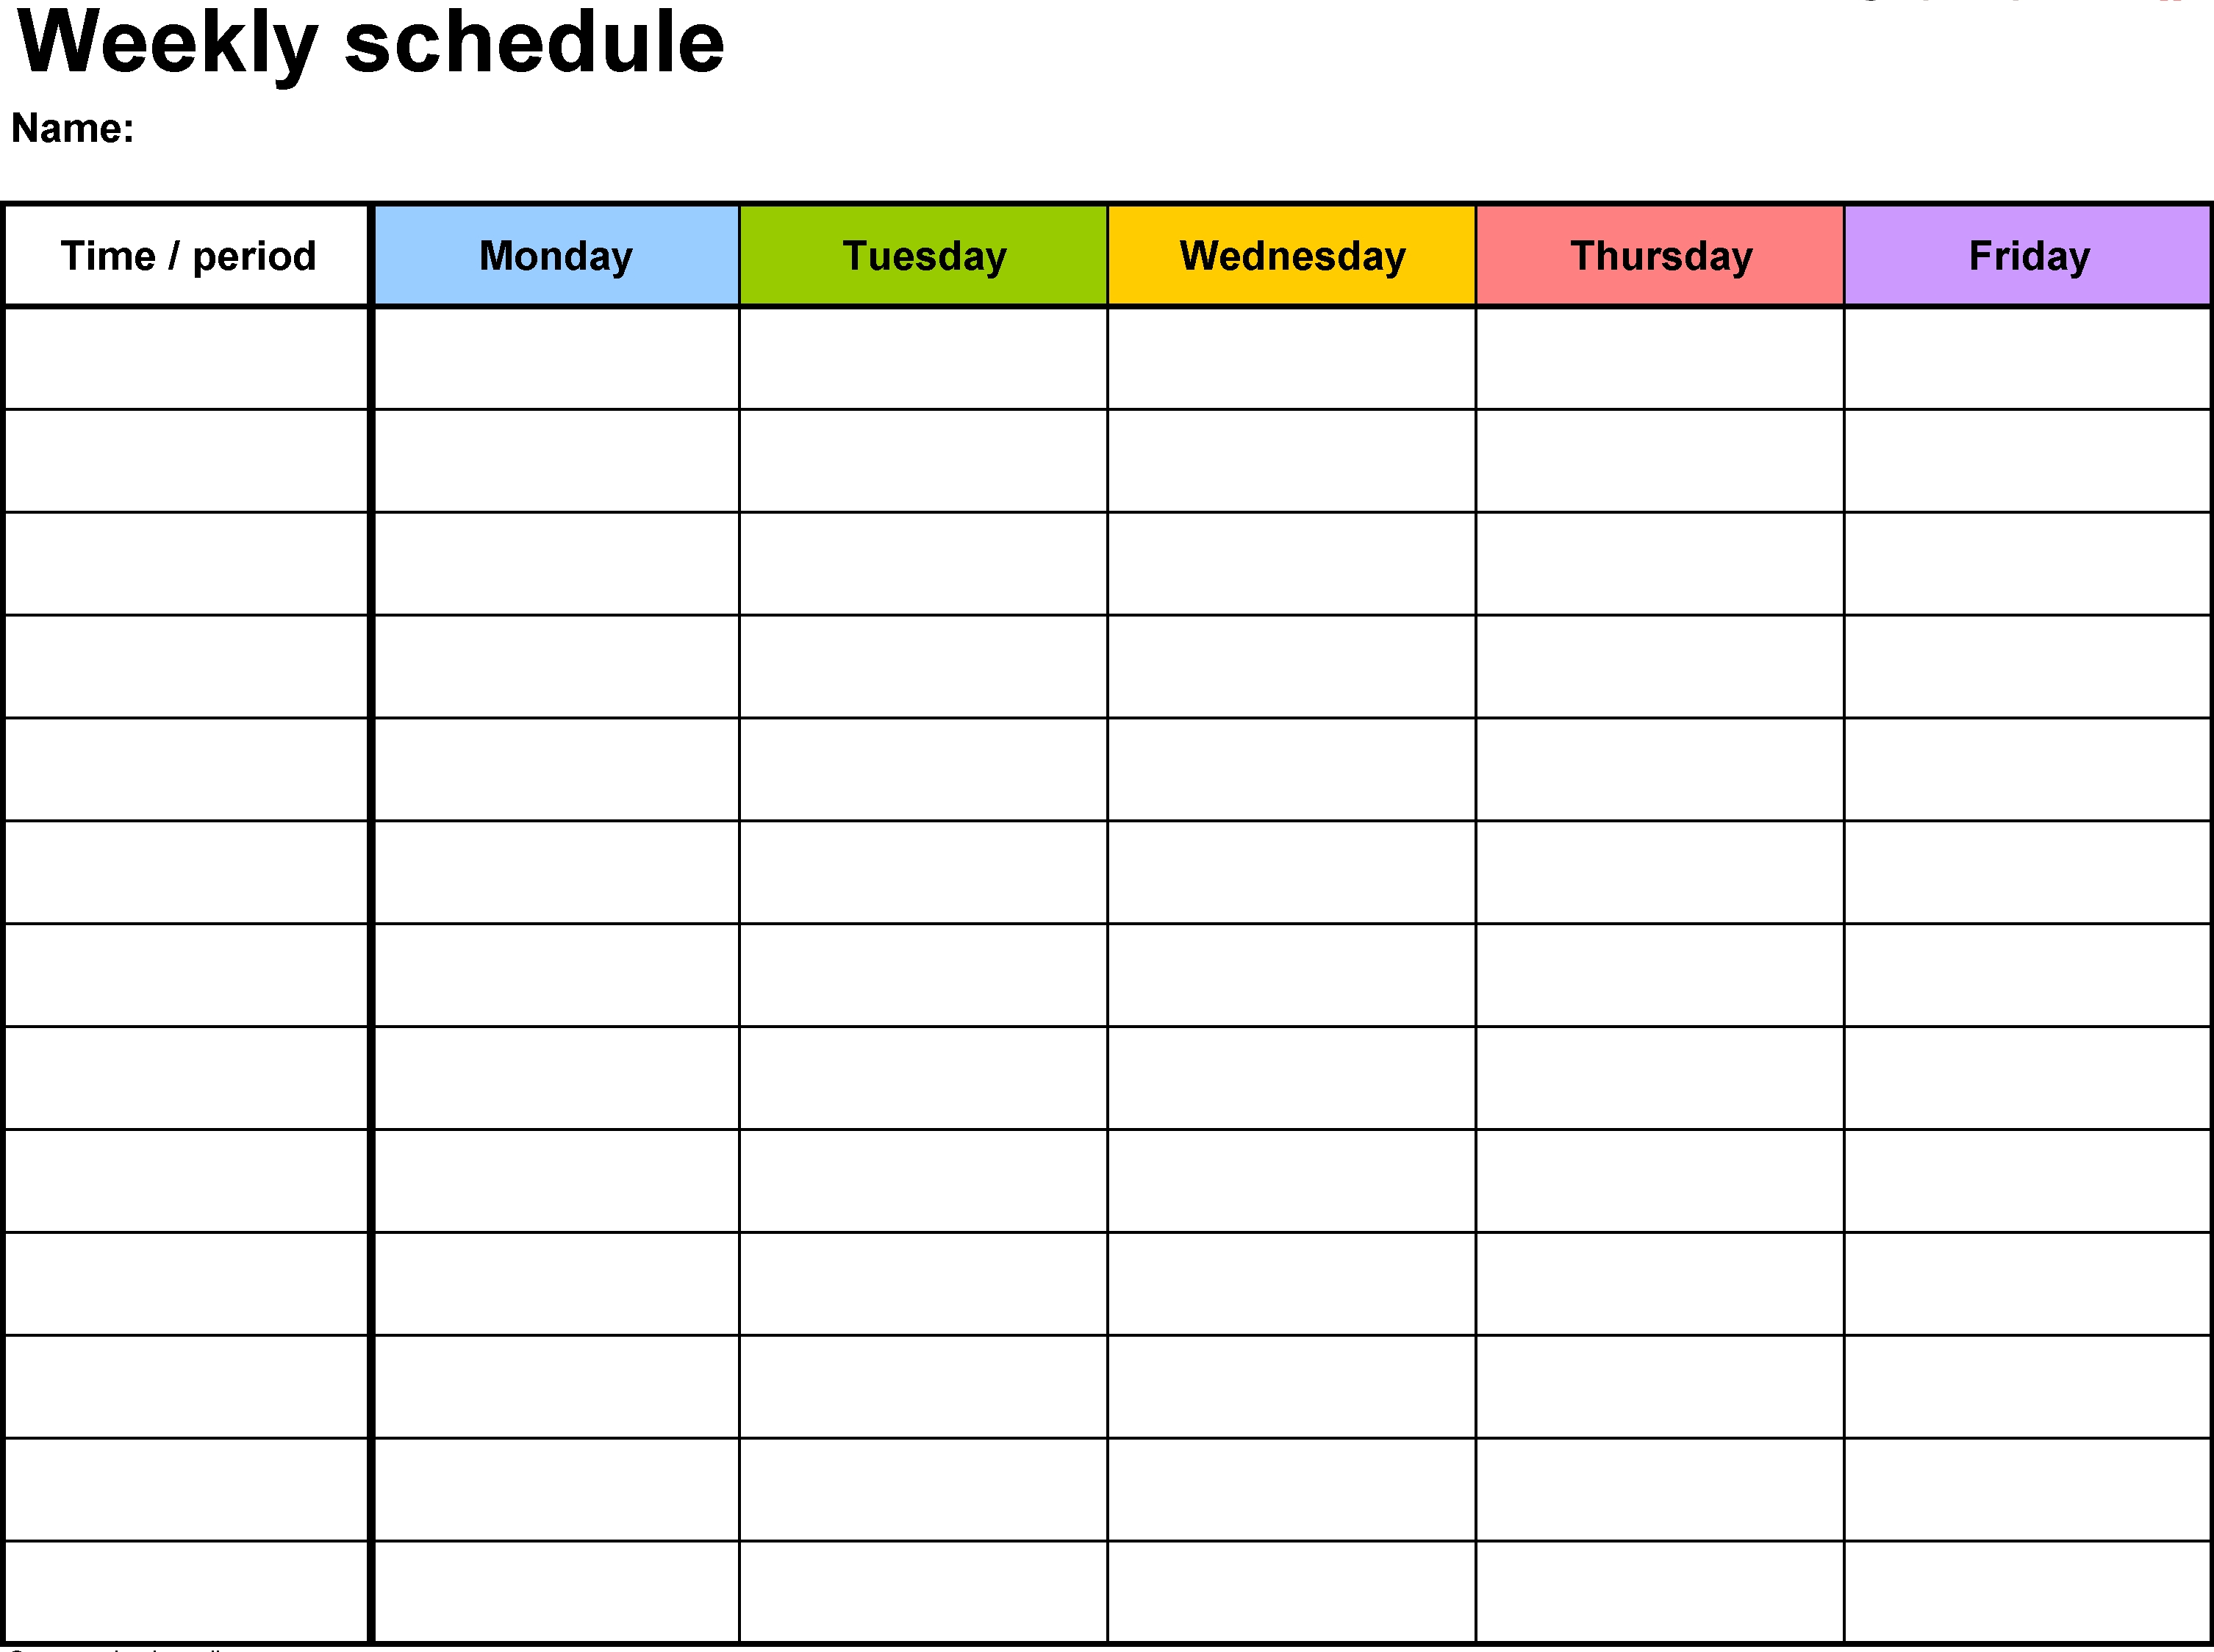 Weekly Hourly Calendar Template | Monthly Calendar Template throughout Printable Hourly Weekly Calendar